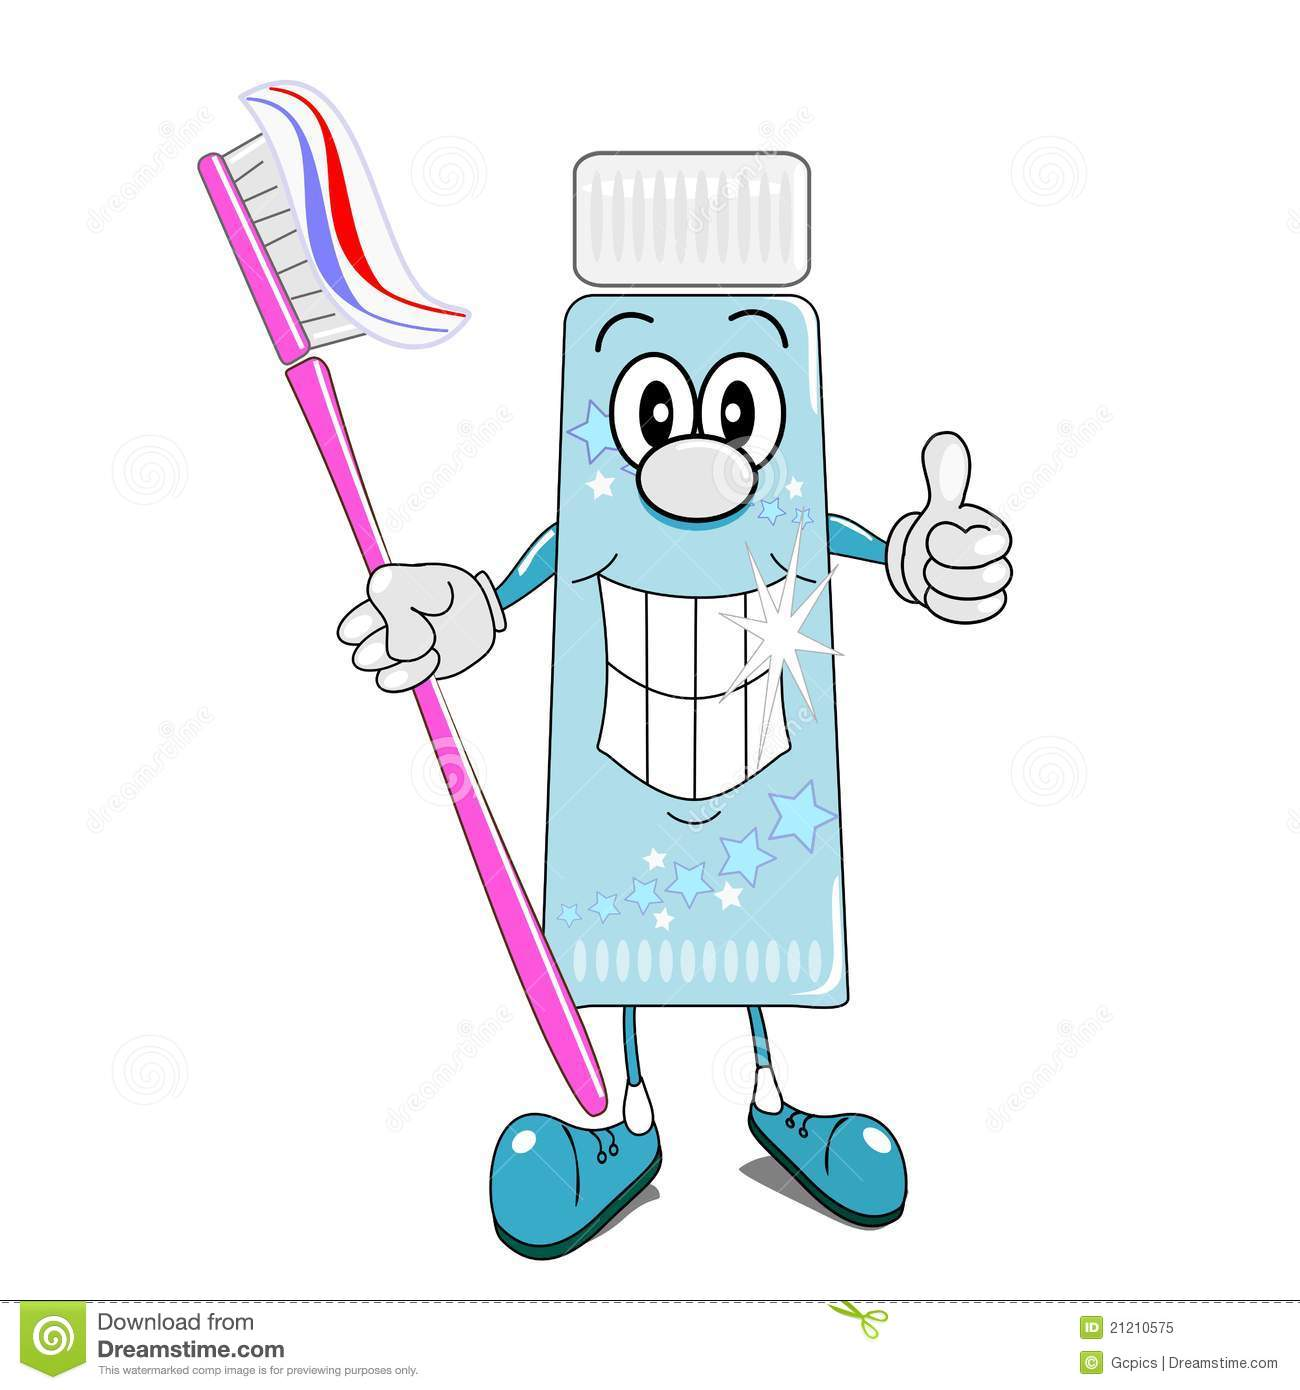 Family Dentifrice Stock Illustration - Download Image Now - iStock